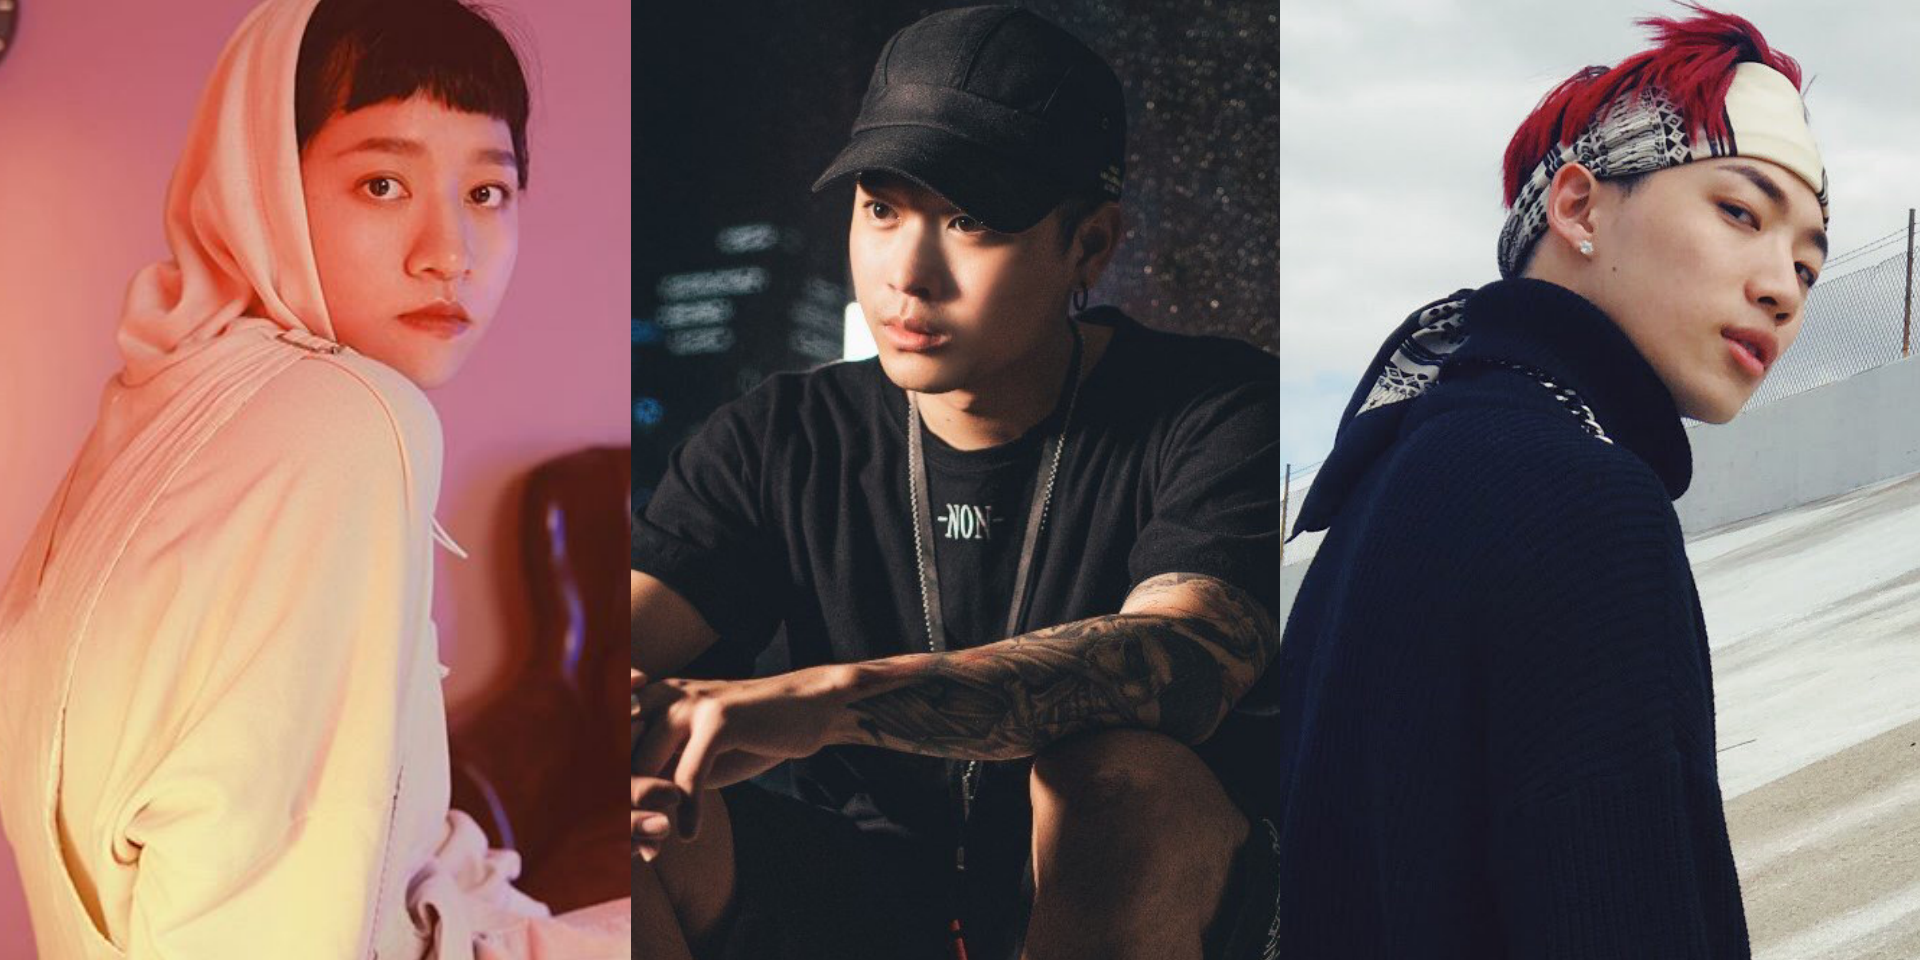 The Next Wave of Taiwanese Hip-Hop Artists